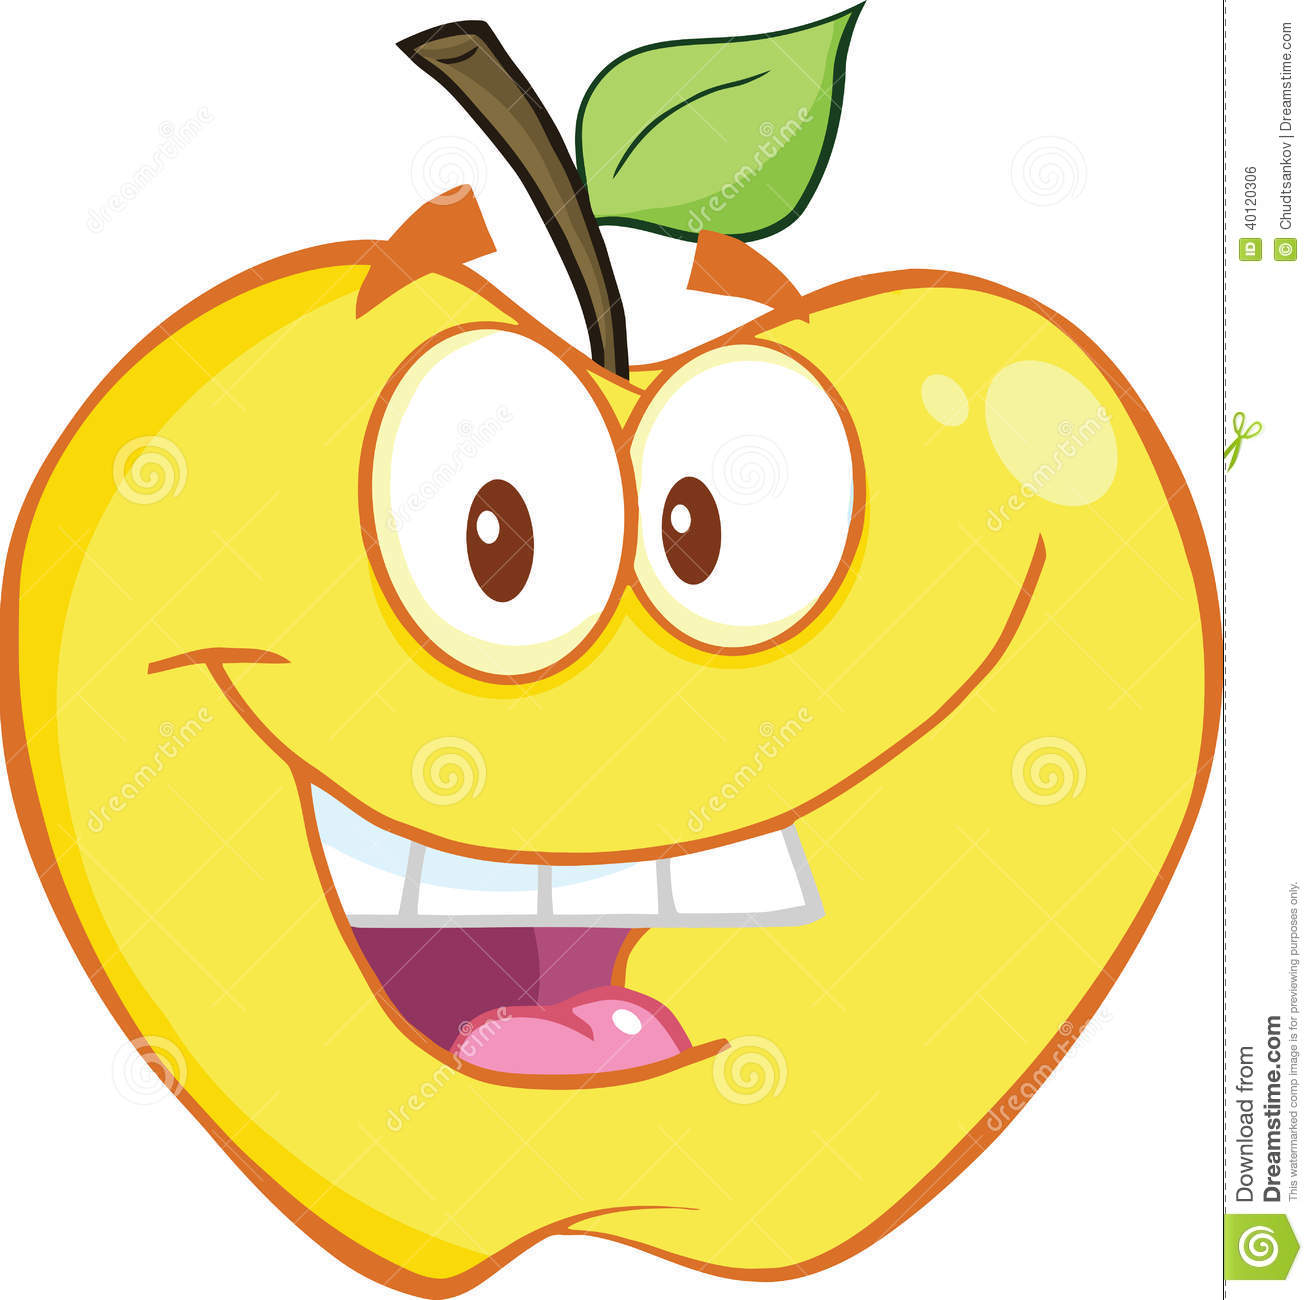 free smiling apple clipart - photo #16